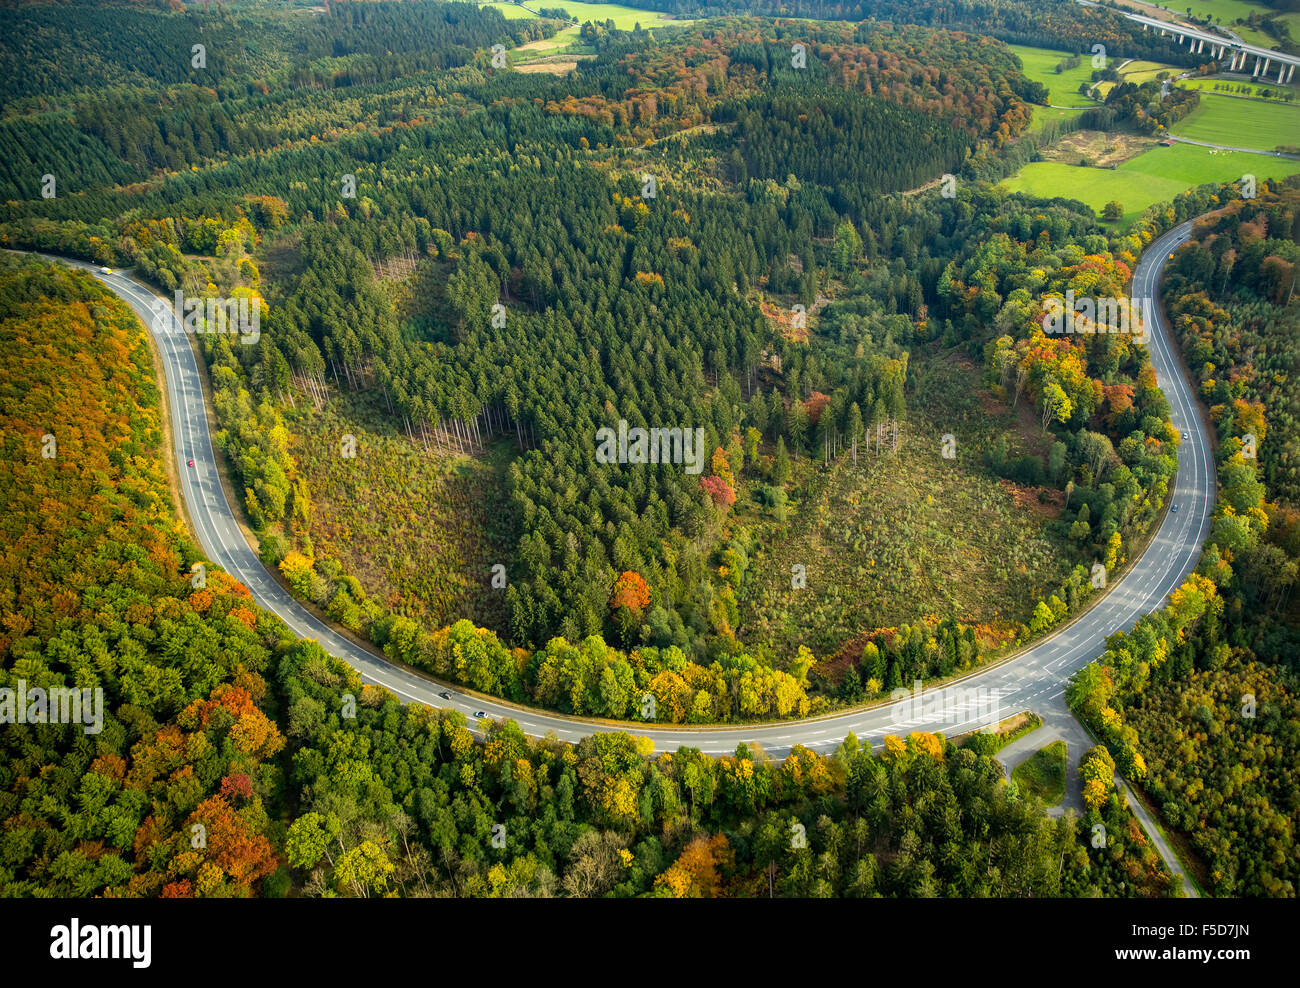 Elongated bend in Arnsberg Forest, Meschede, Sauerland, North Rhine-Westphalia, Germany - Stock Image